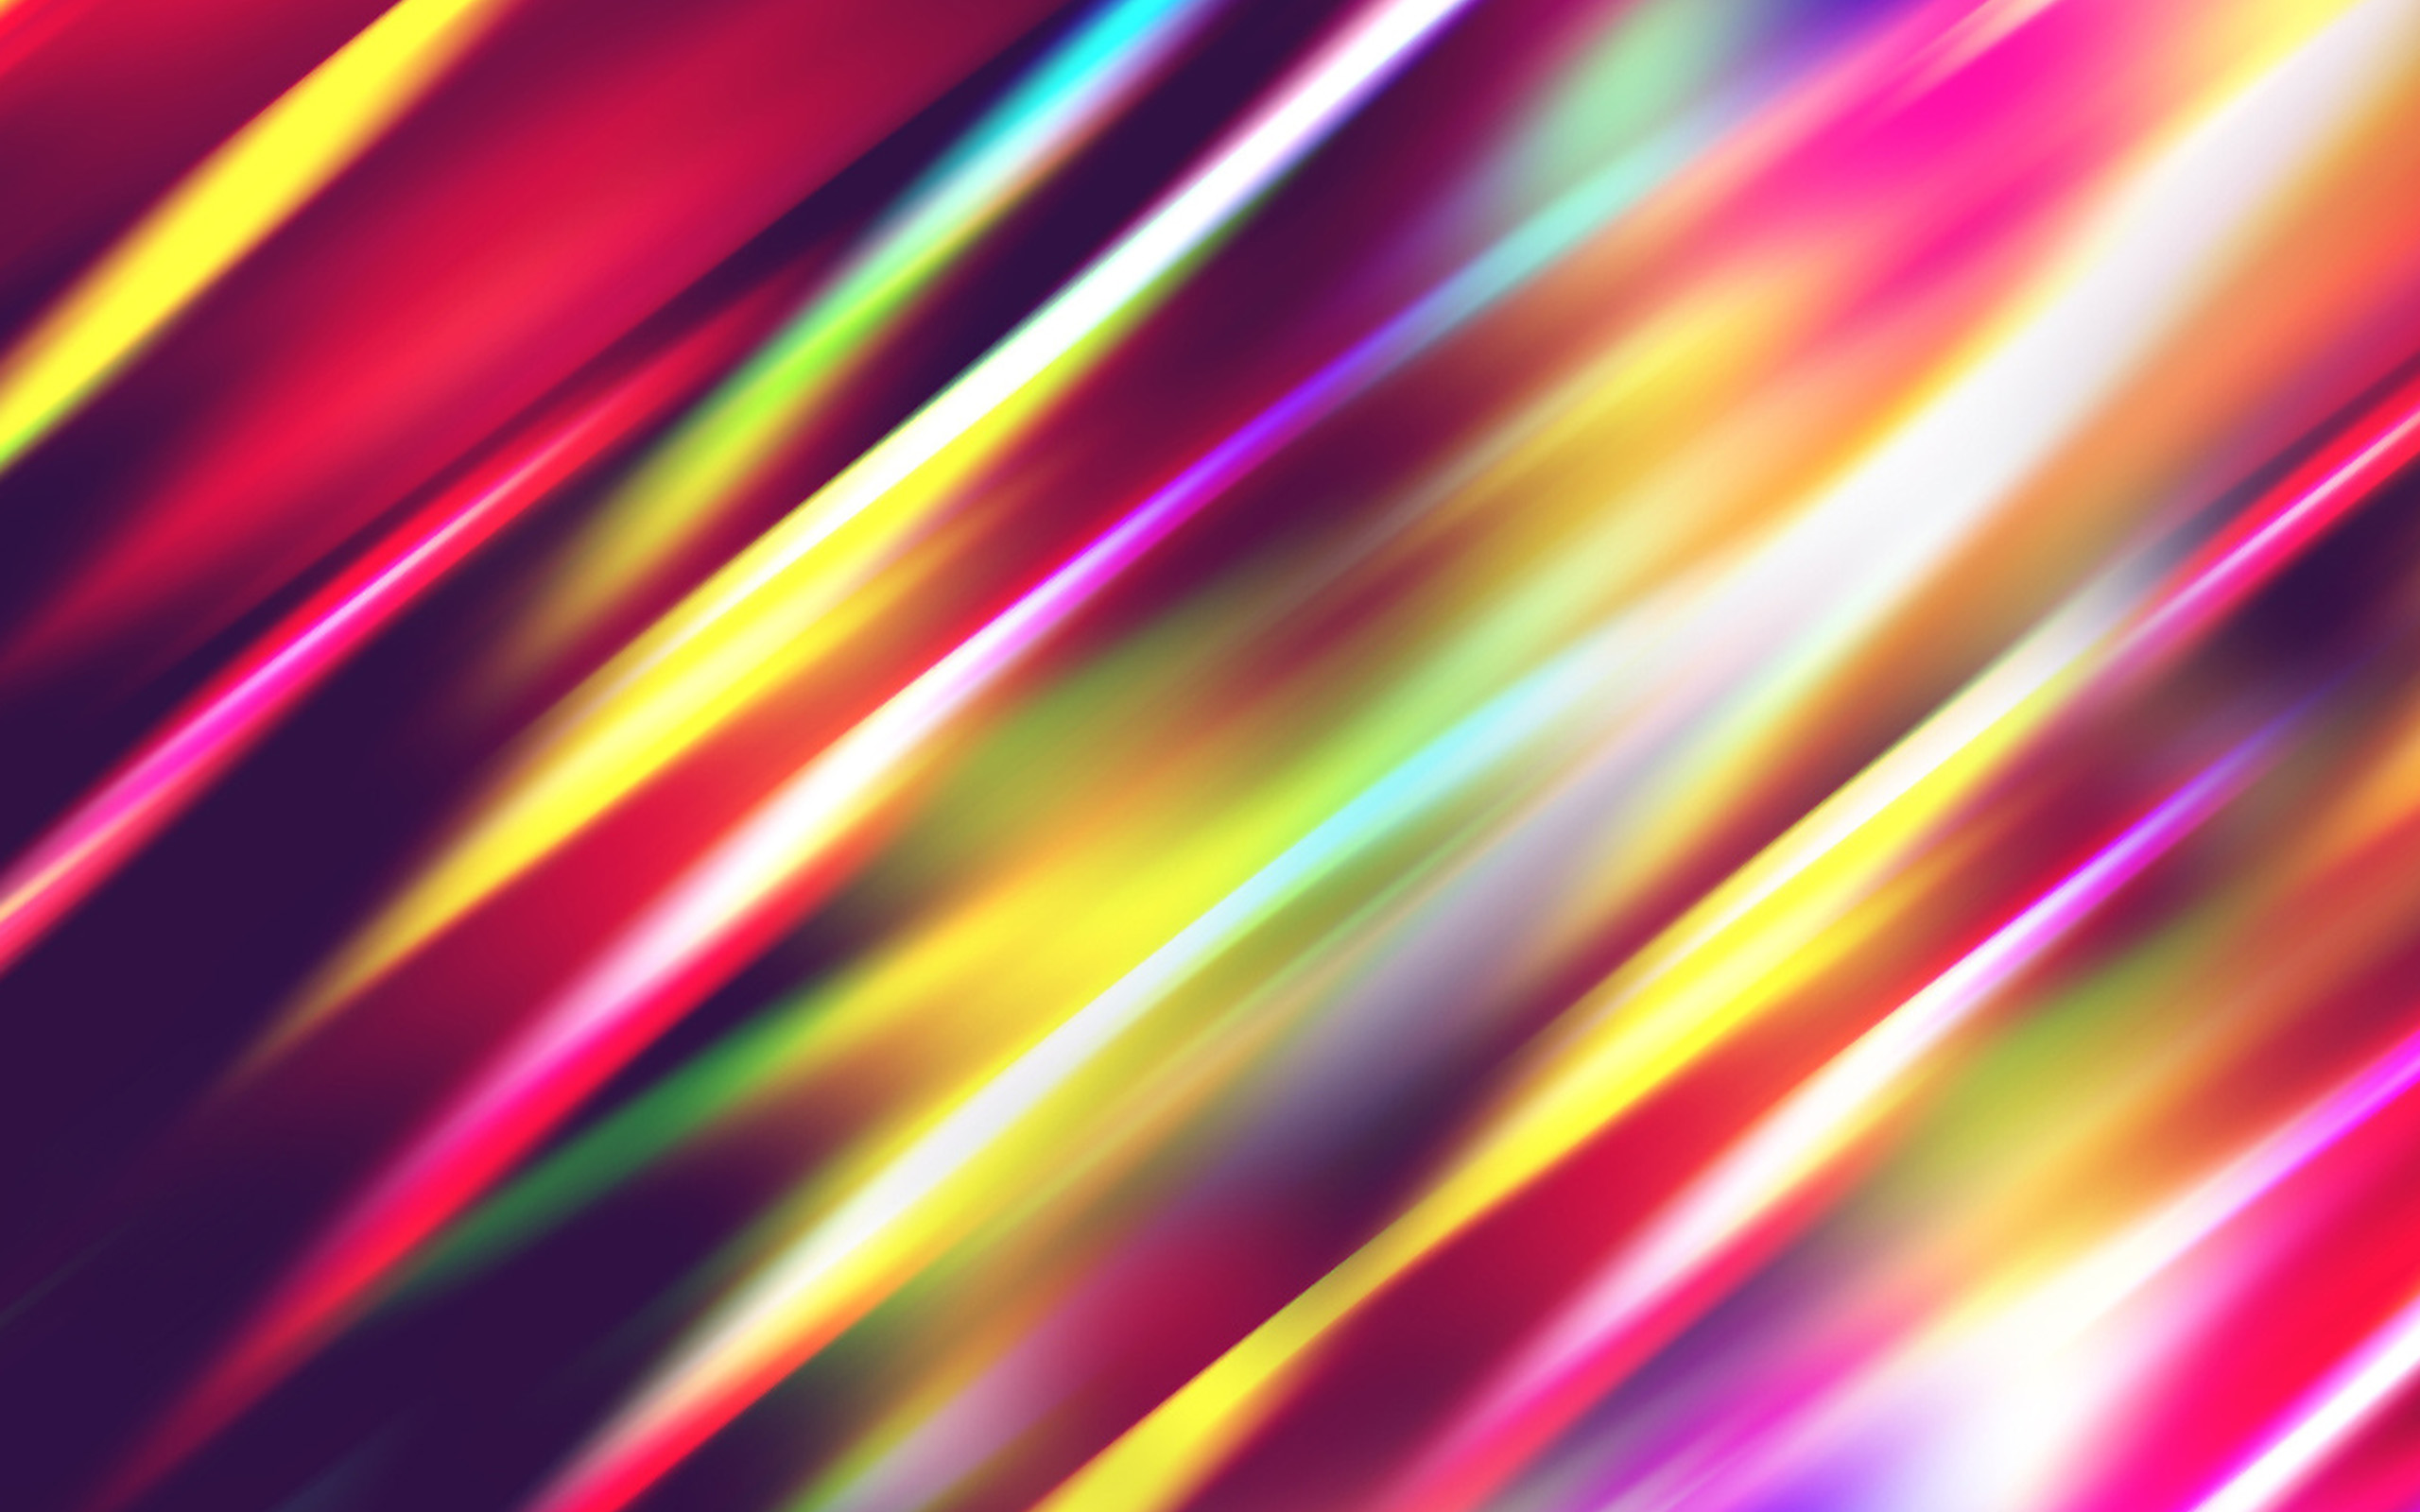 Hd Macbook Air Wallpapers Vj80 Chrome Lights Rainbow Pattern Papers Co